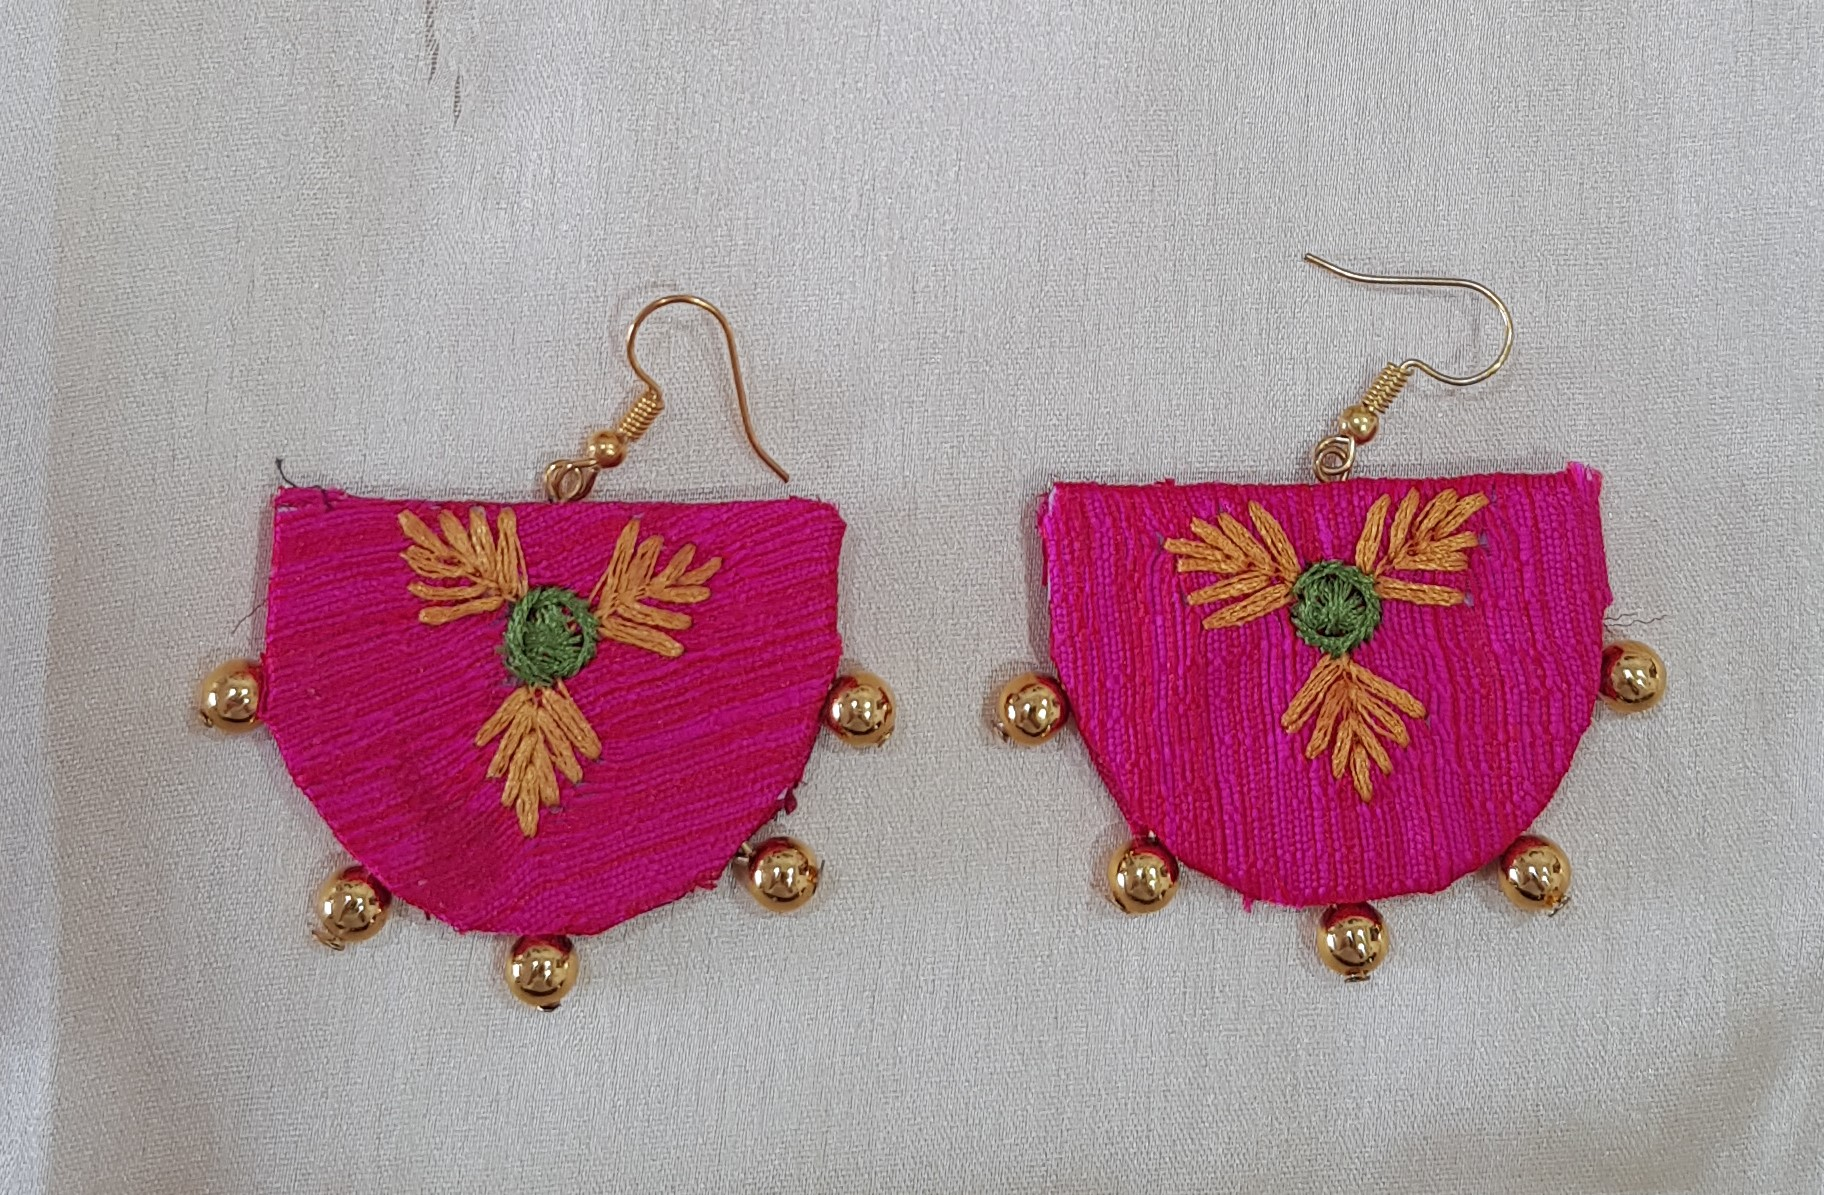 Handcrafted Khun Fabric Jewellery Set Bright Pink : Picture